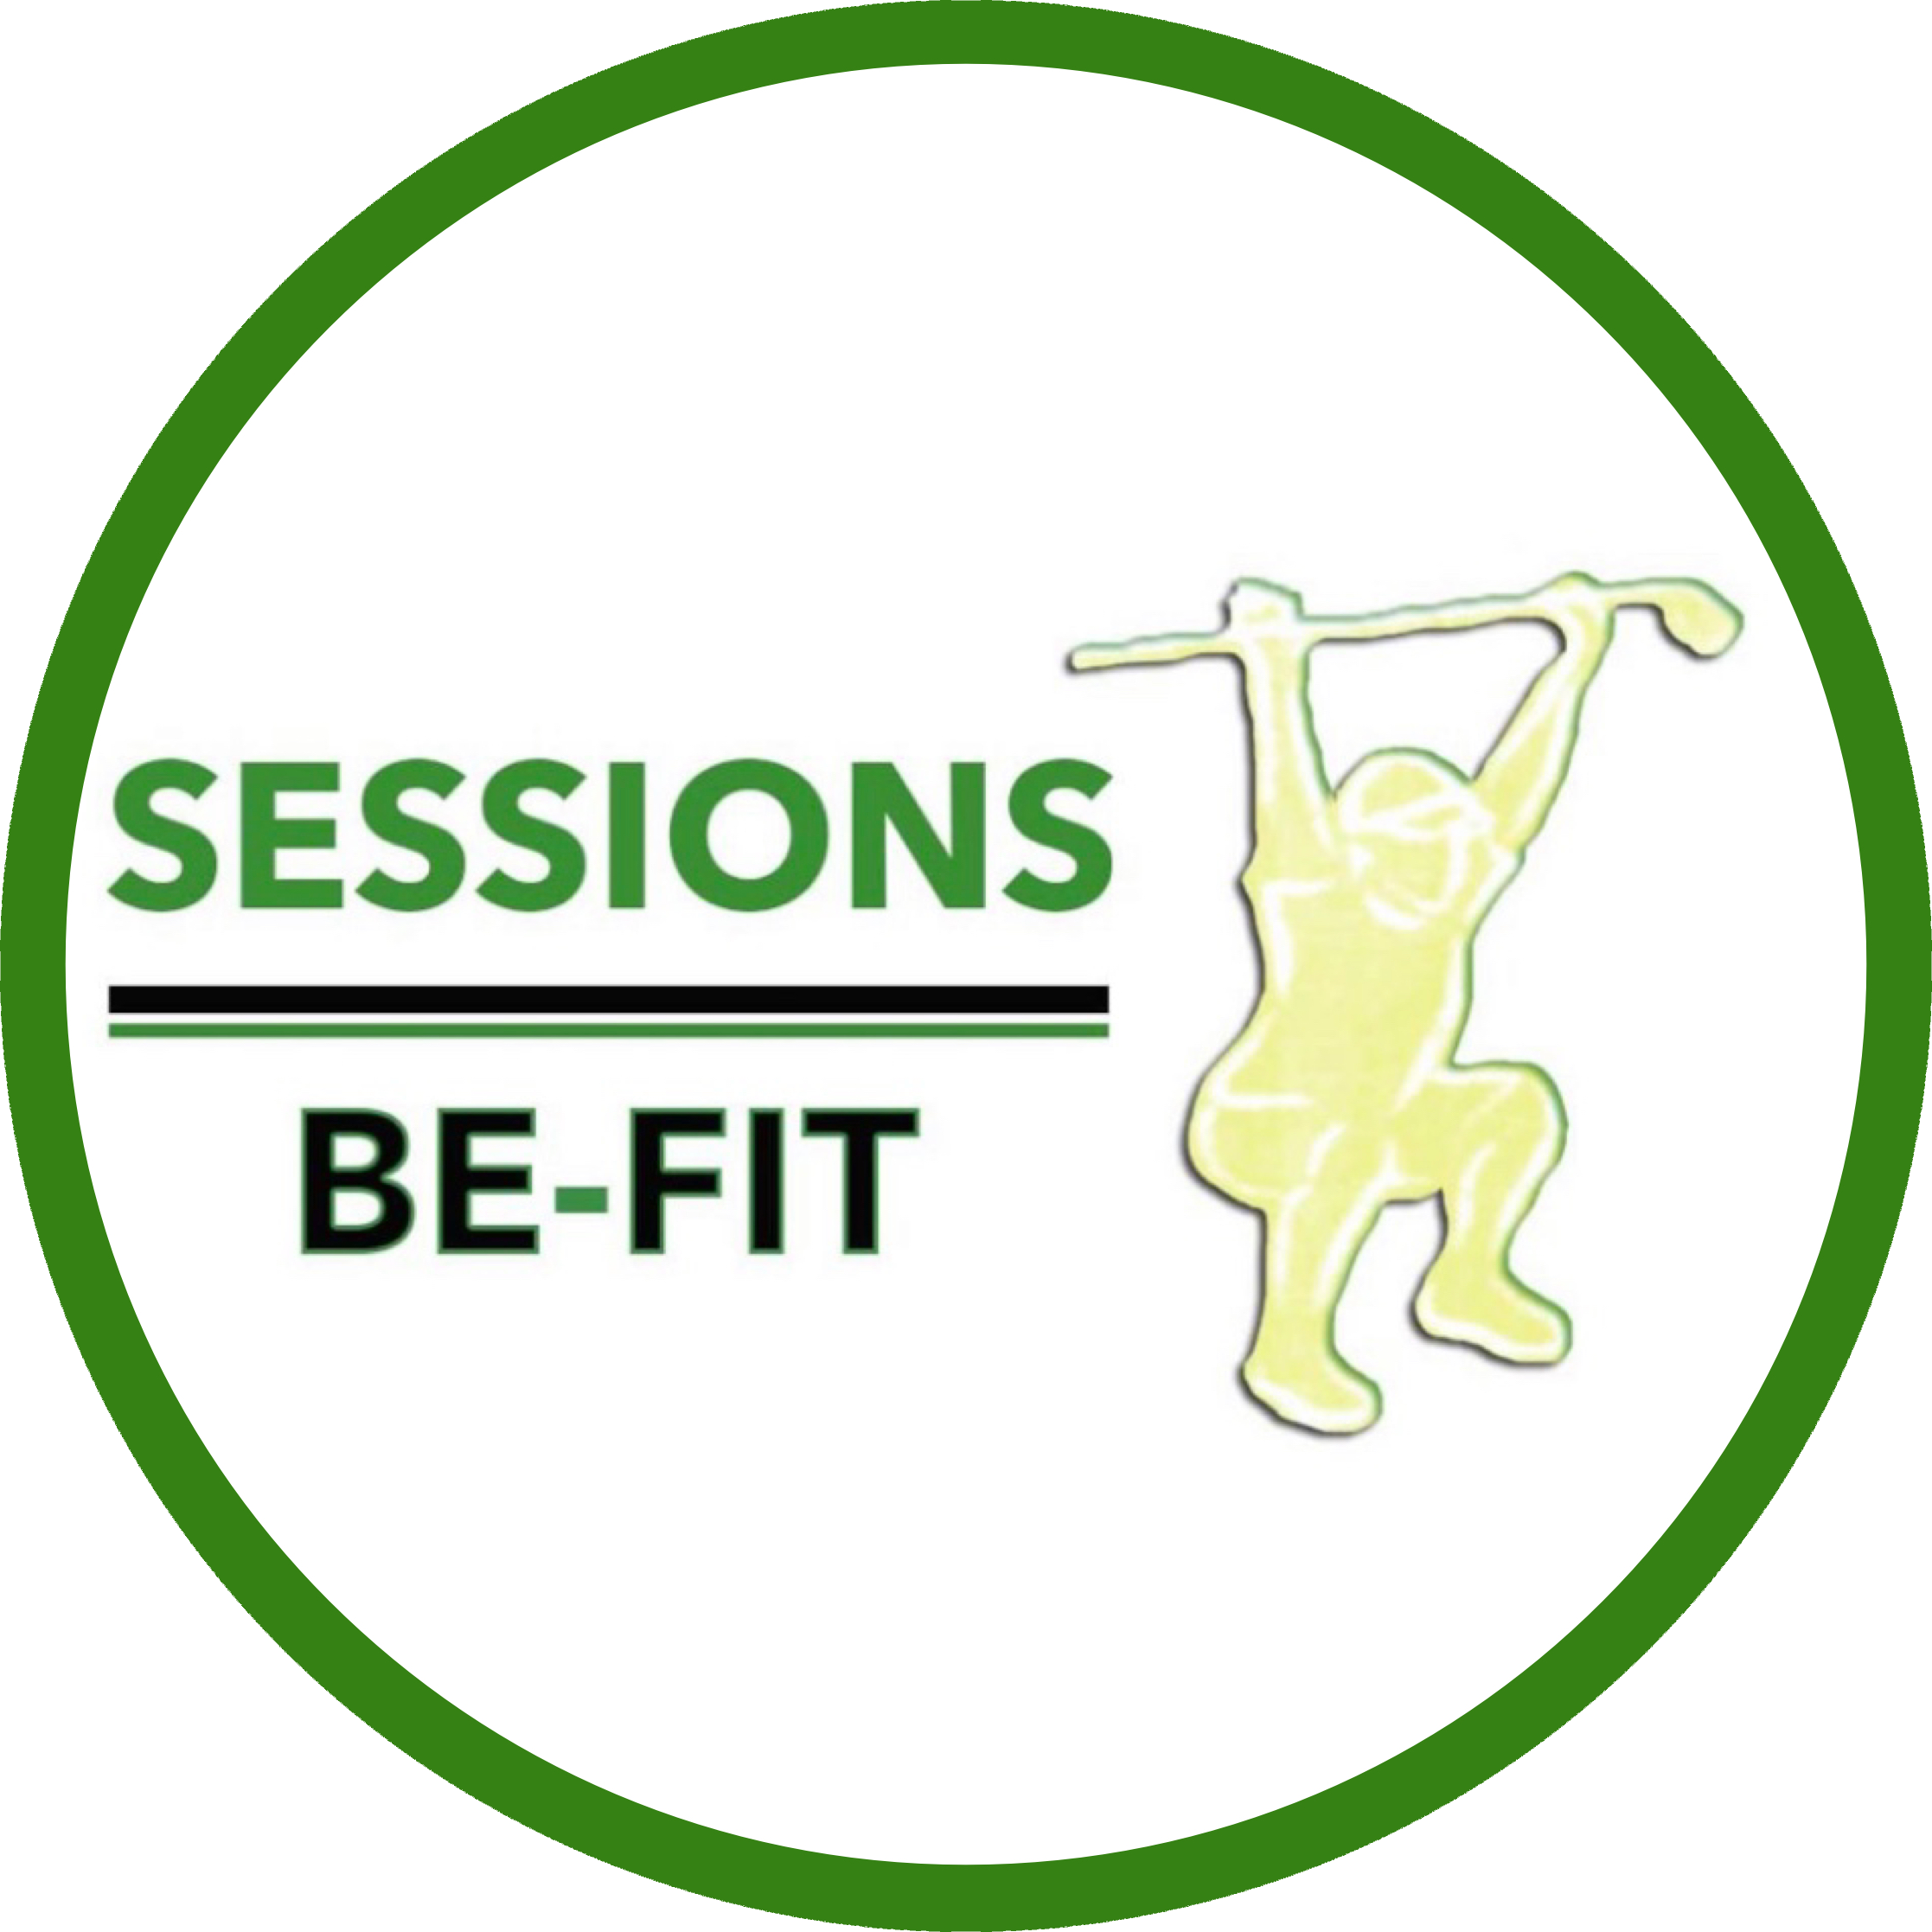 Sessions Be-Fit (sessionsbefit) Profile Image   Linktree